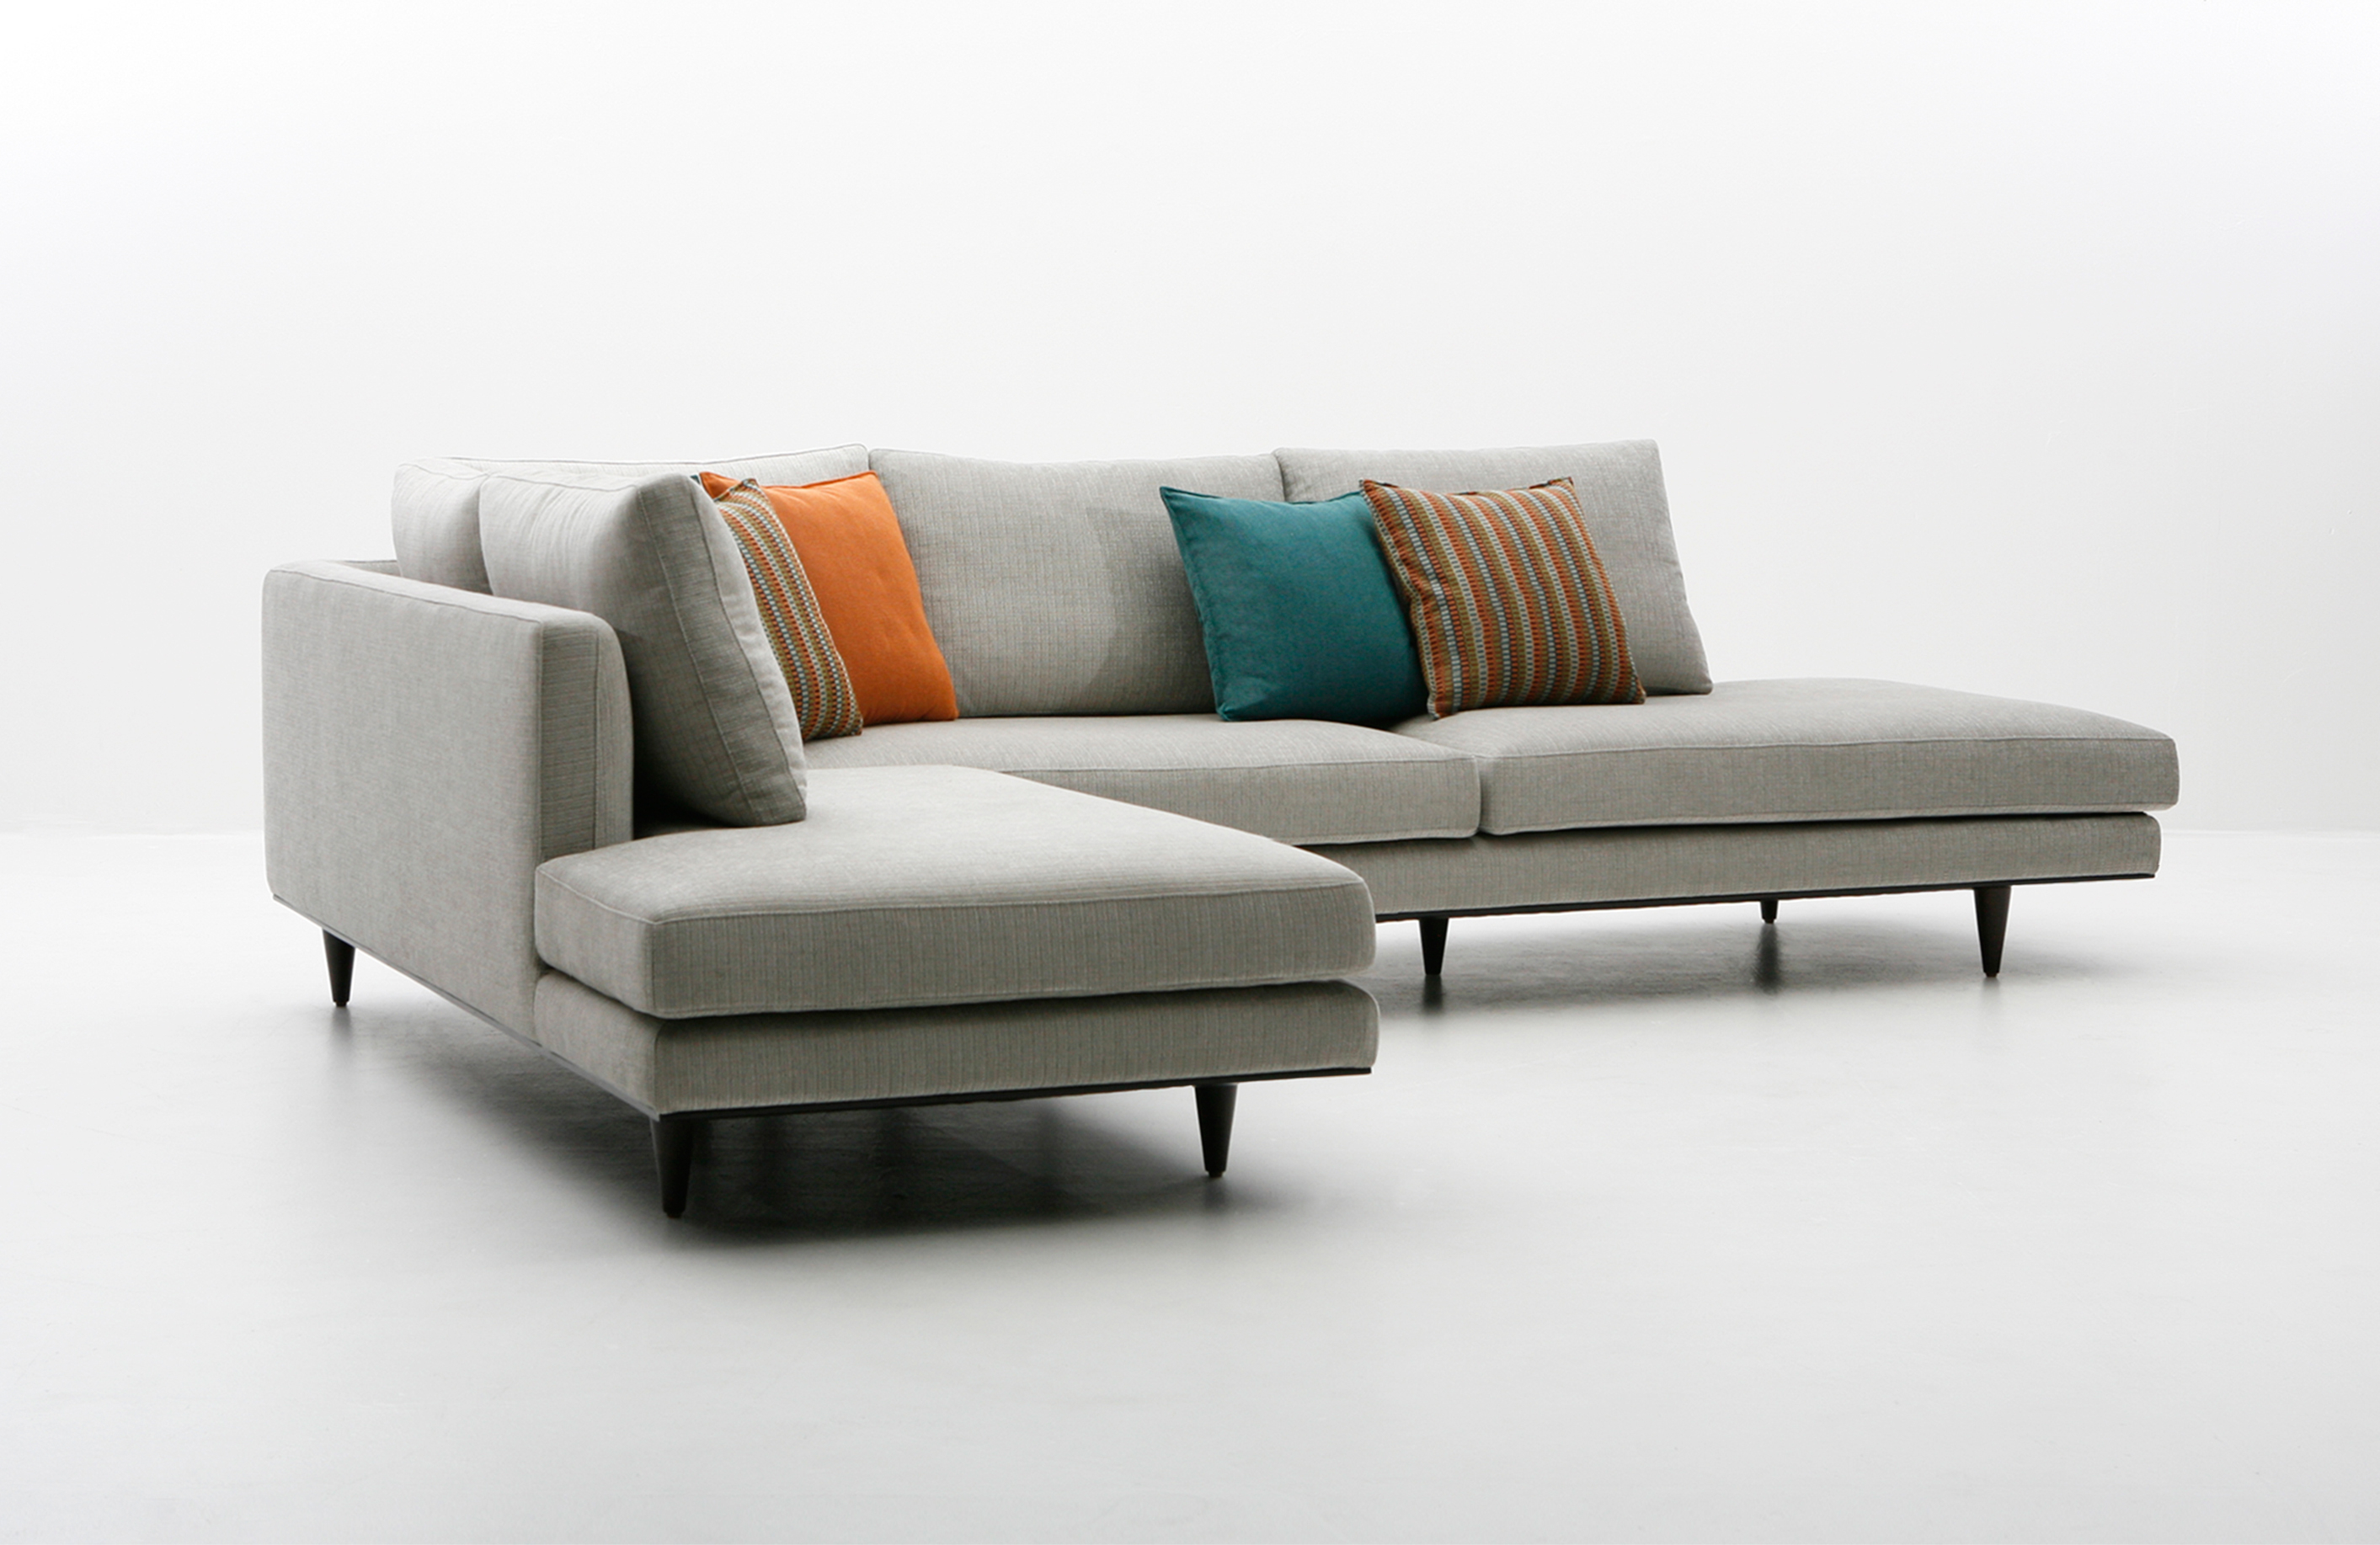 Dellarobbia Milo Sofa, Chair And Sectional | Living Room | Sklar Intended For Milo Sofa Chairs (Image 6 of 25)